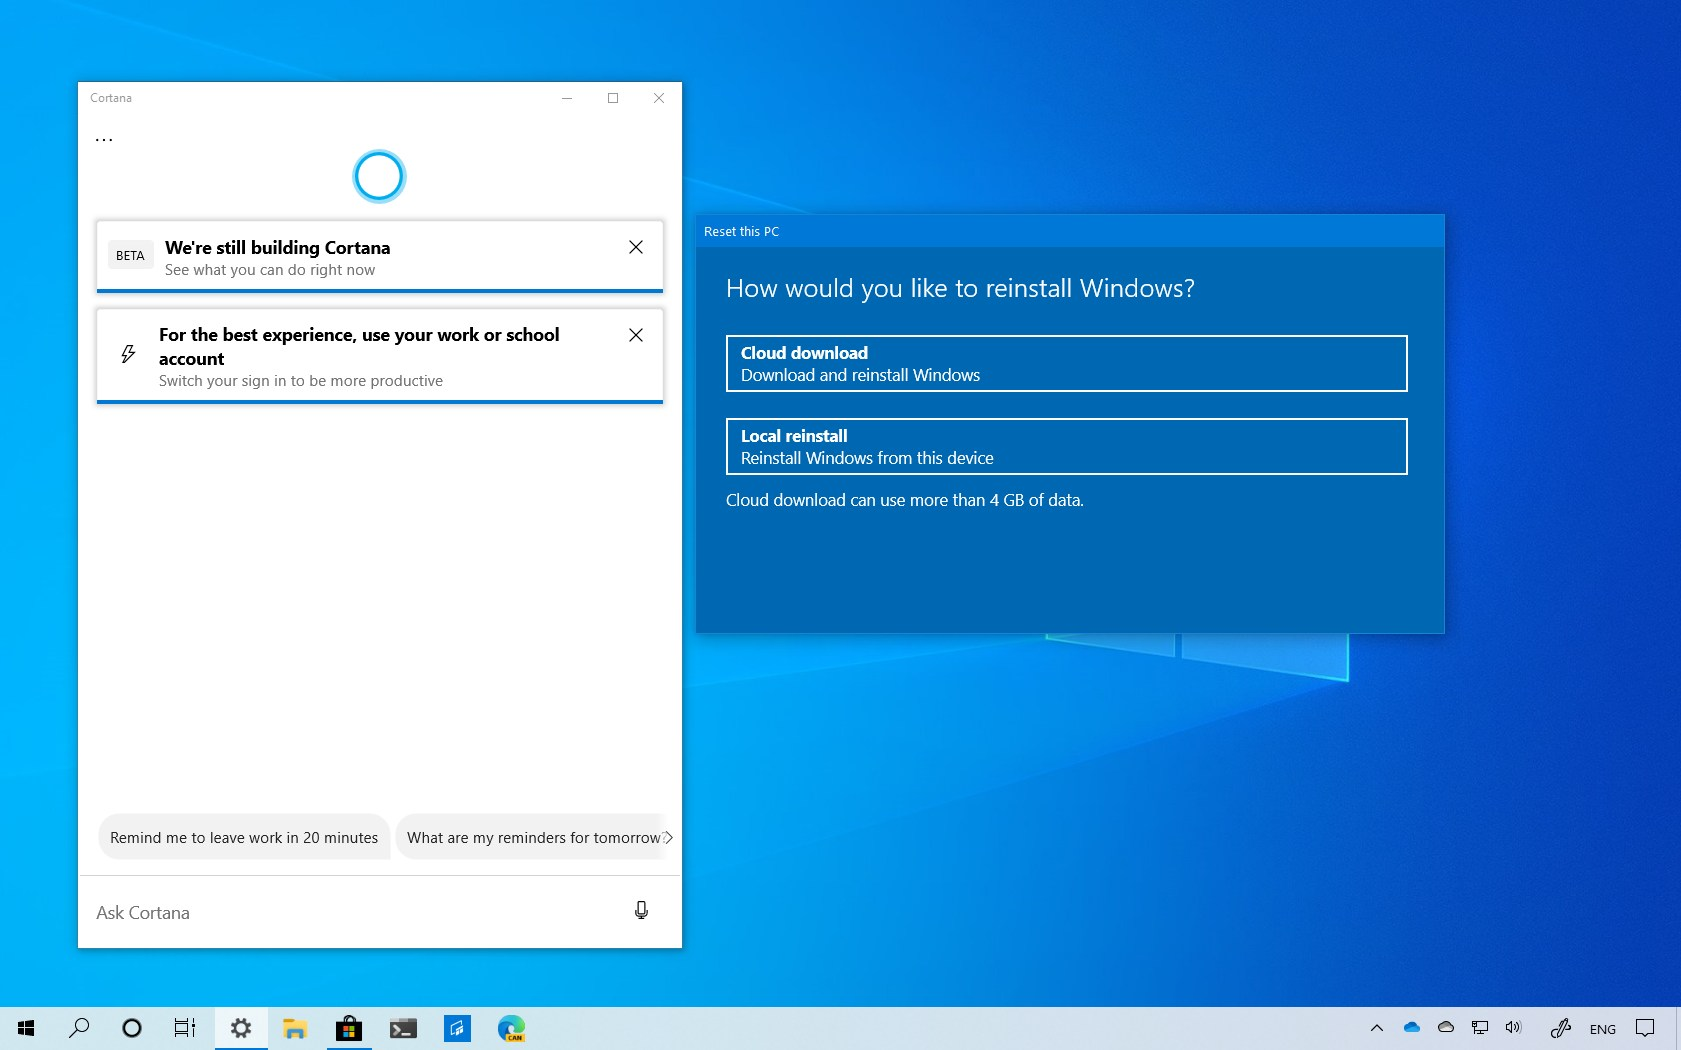 Windows 10 version 2004 best features and changes